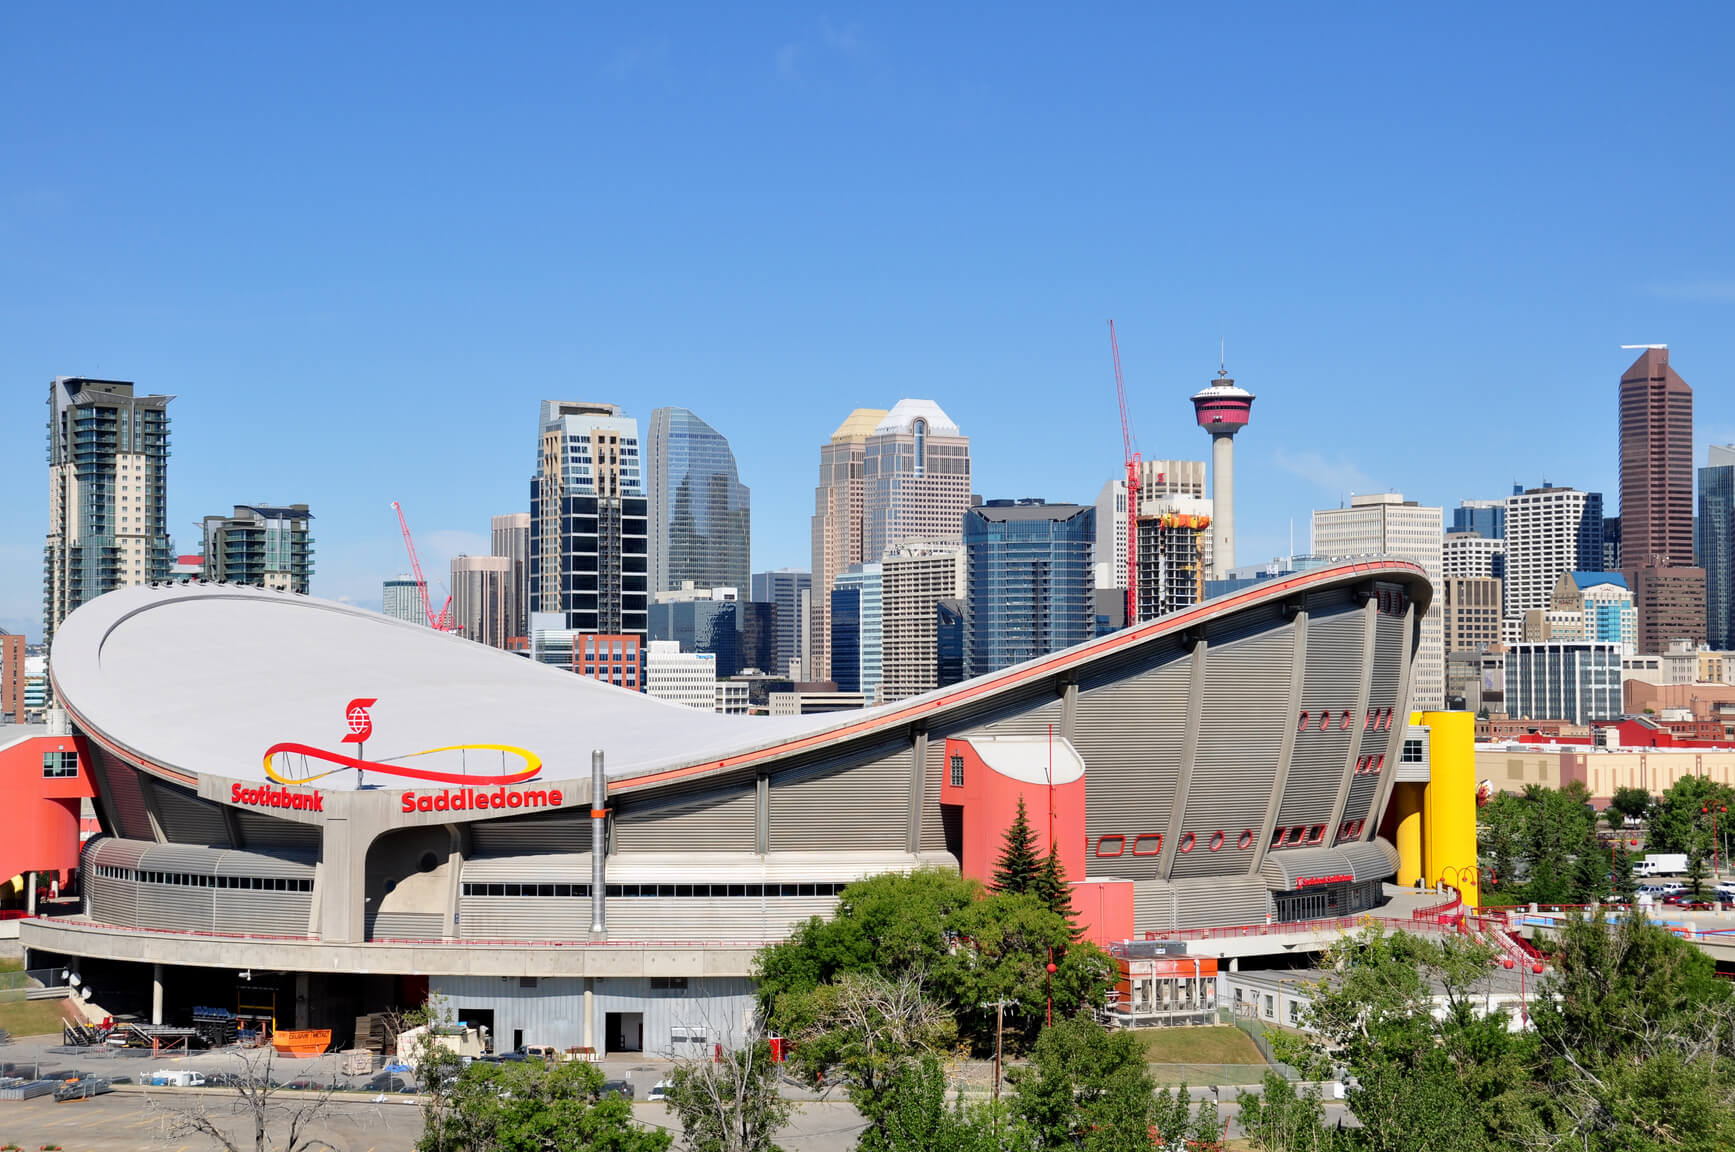 Charlotte, North Carolina to Calgary, Canada for only $246 roundtrip (Sep-Apr dates)